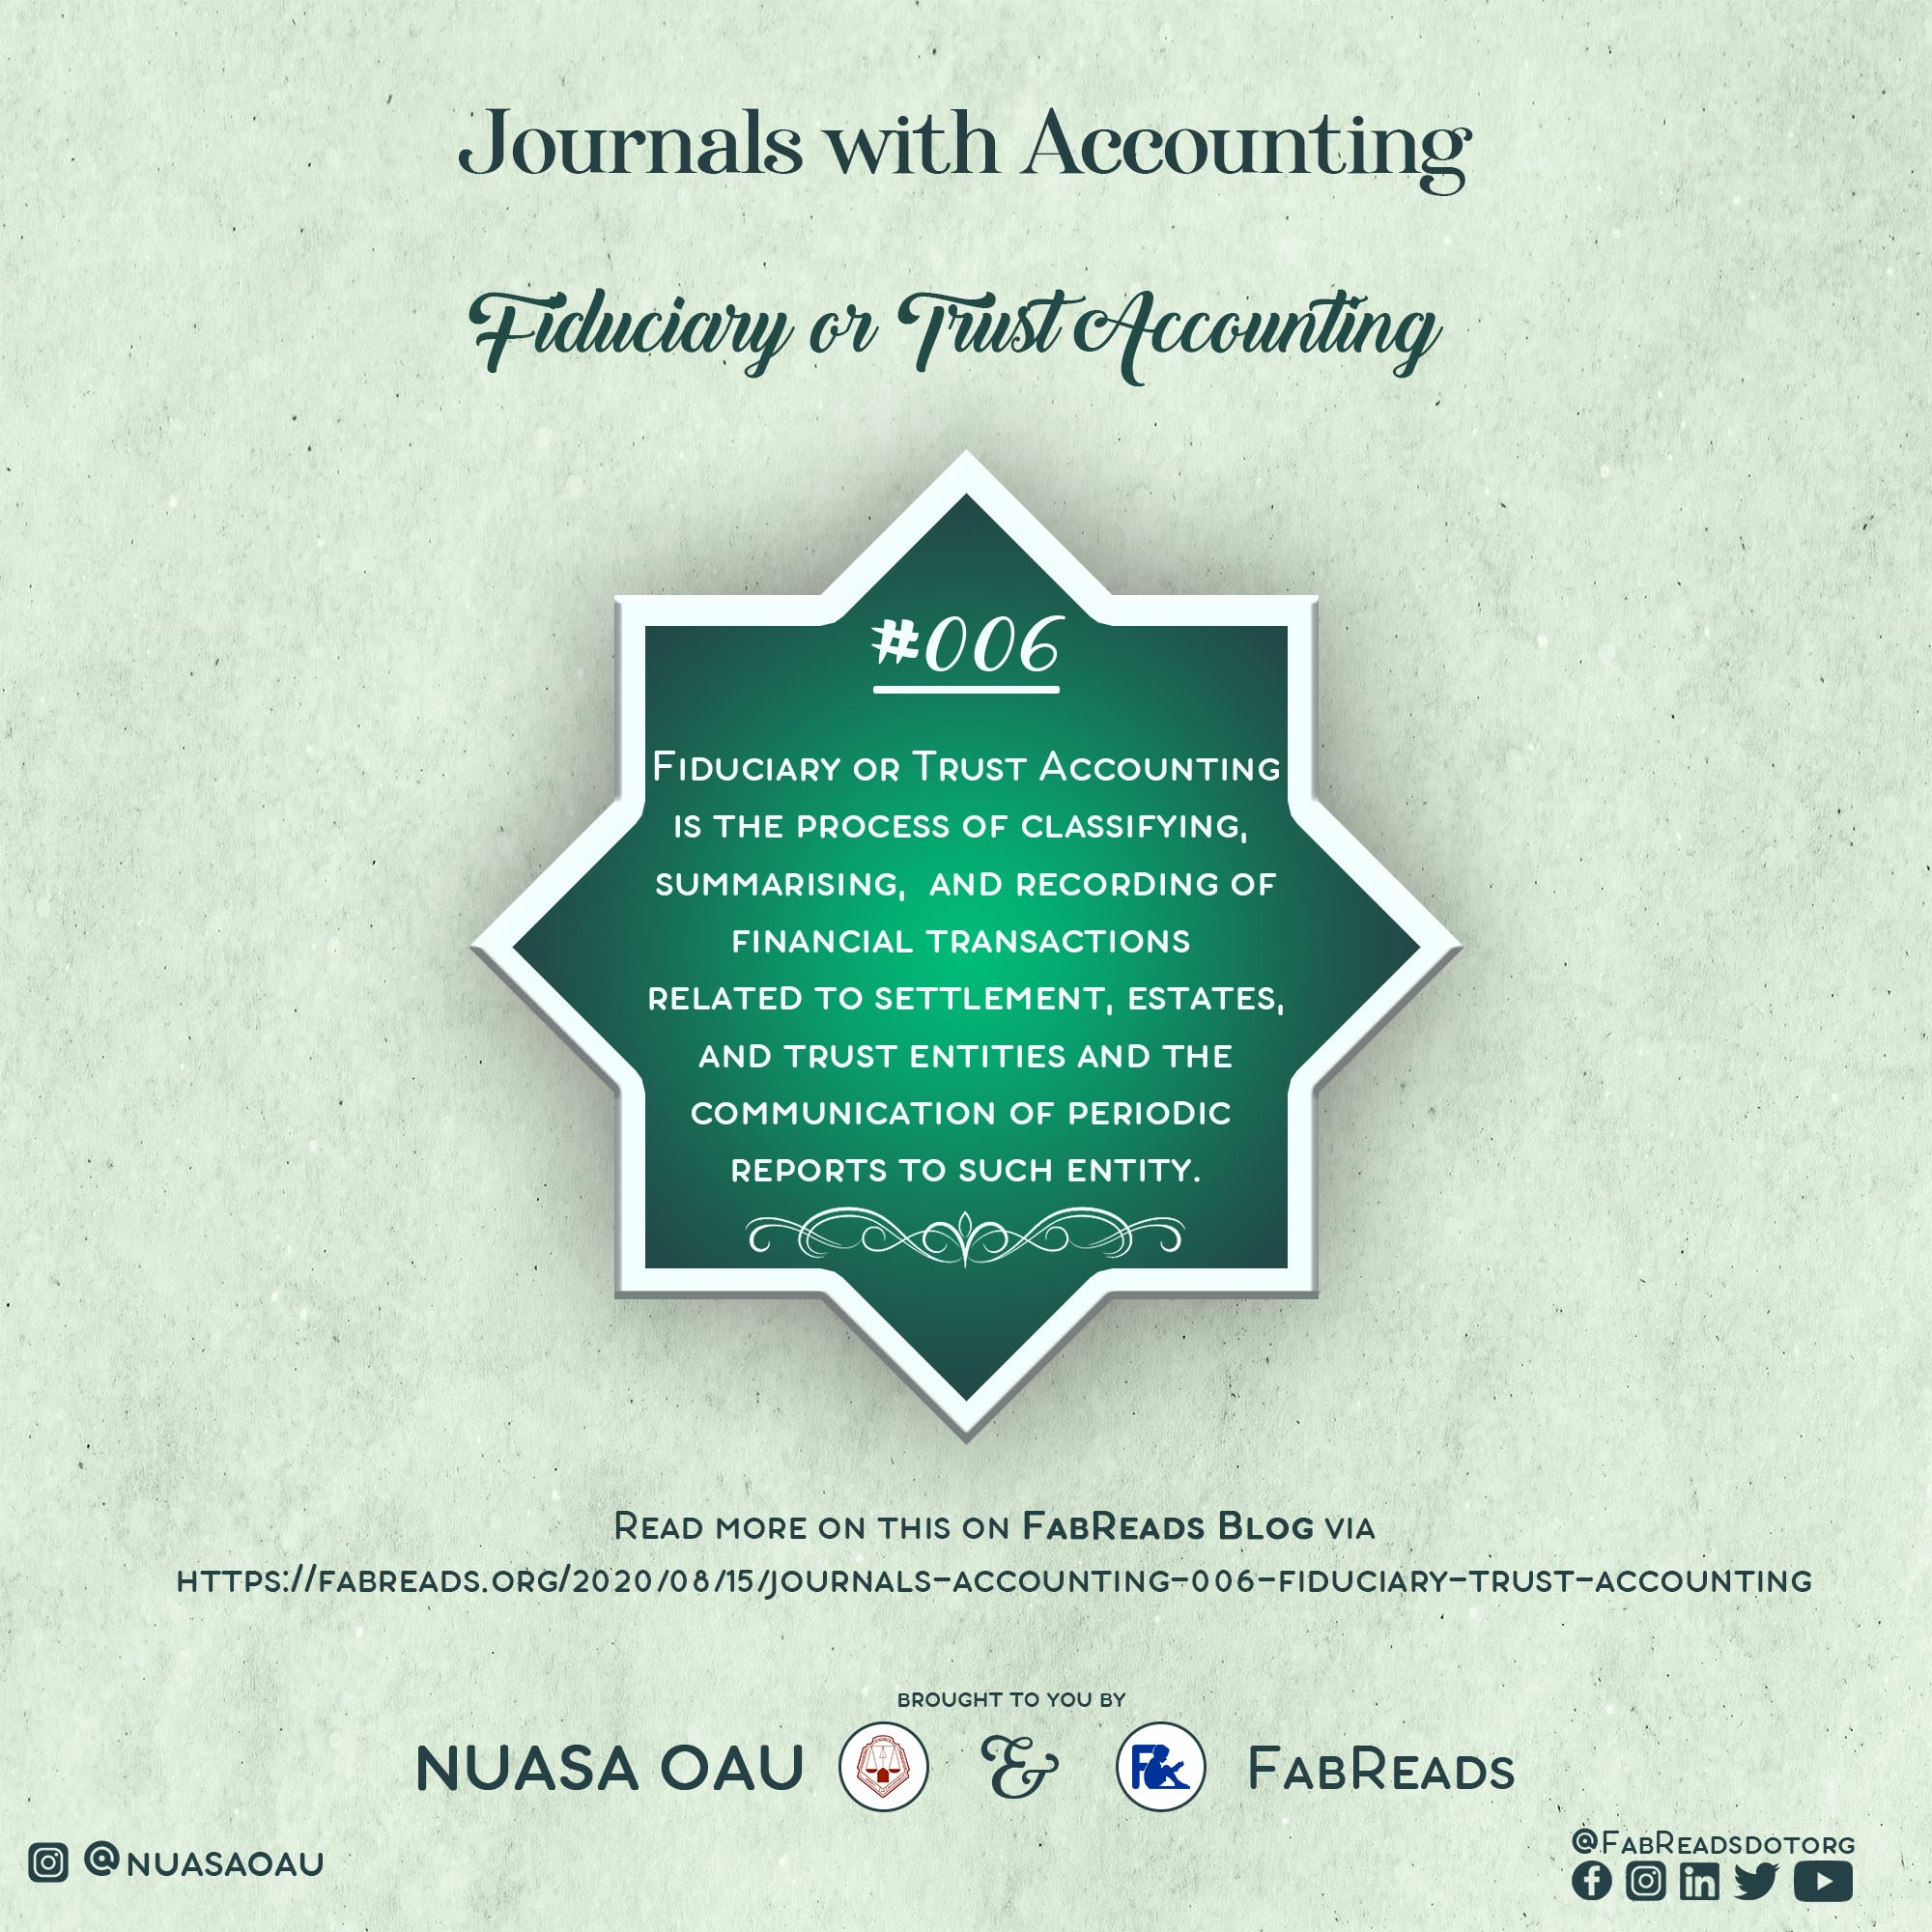 Journals with Accounting 006 – Fiduciary or Trust Accounting